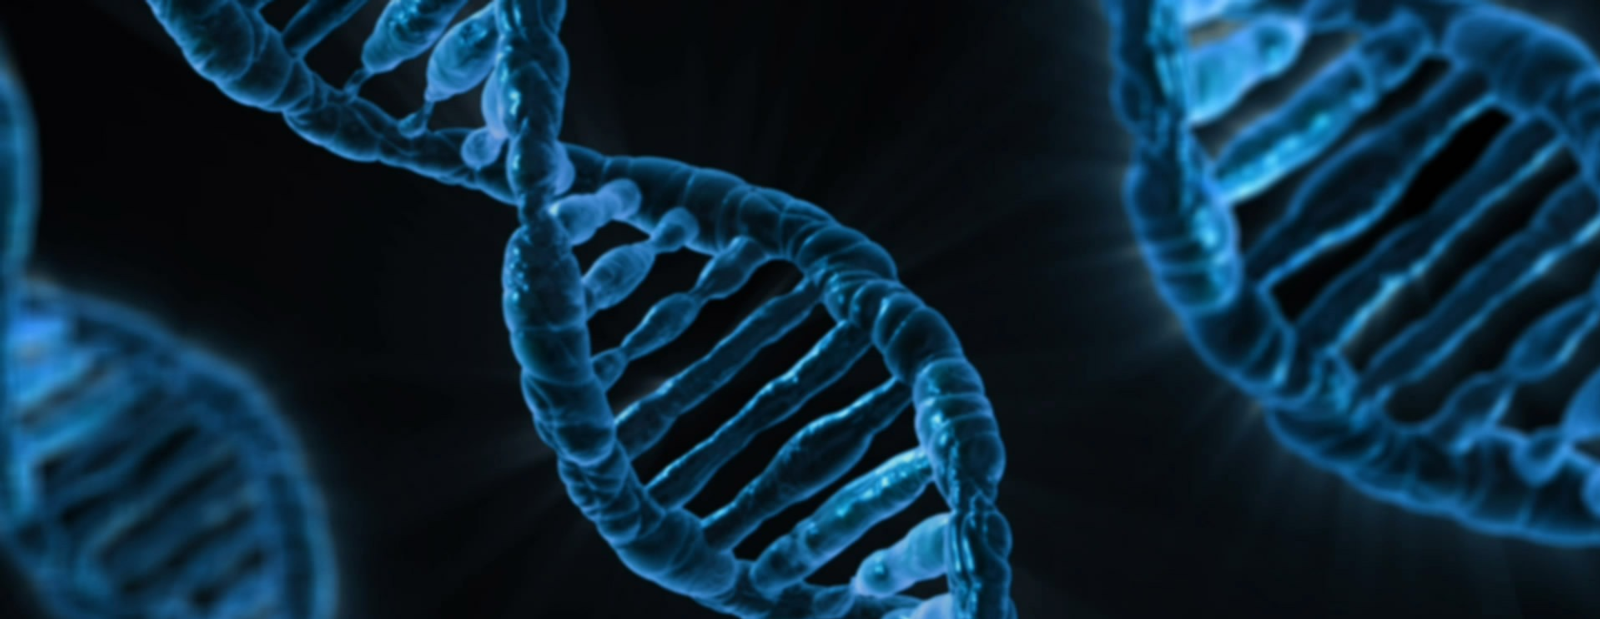 Reproductive gene editing imperils universal human rights | OpenGlobalRights